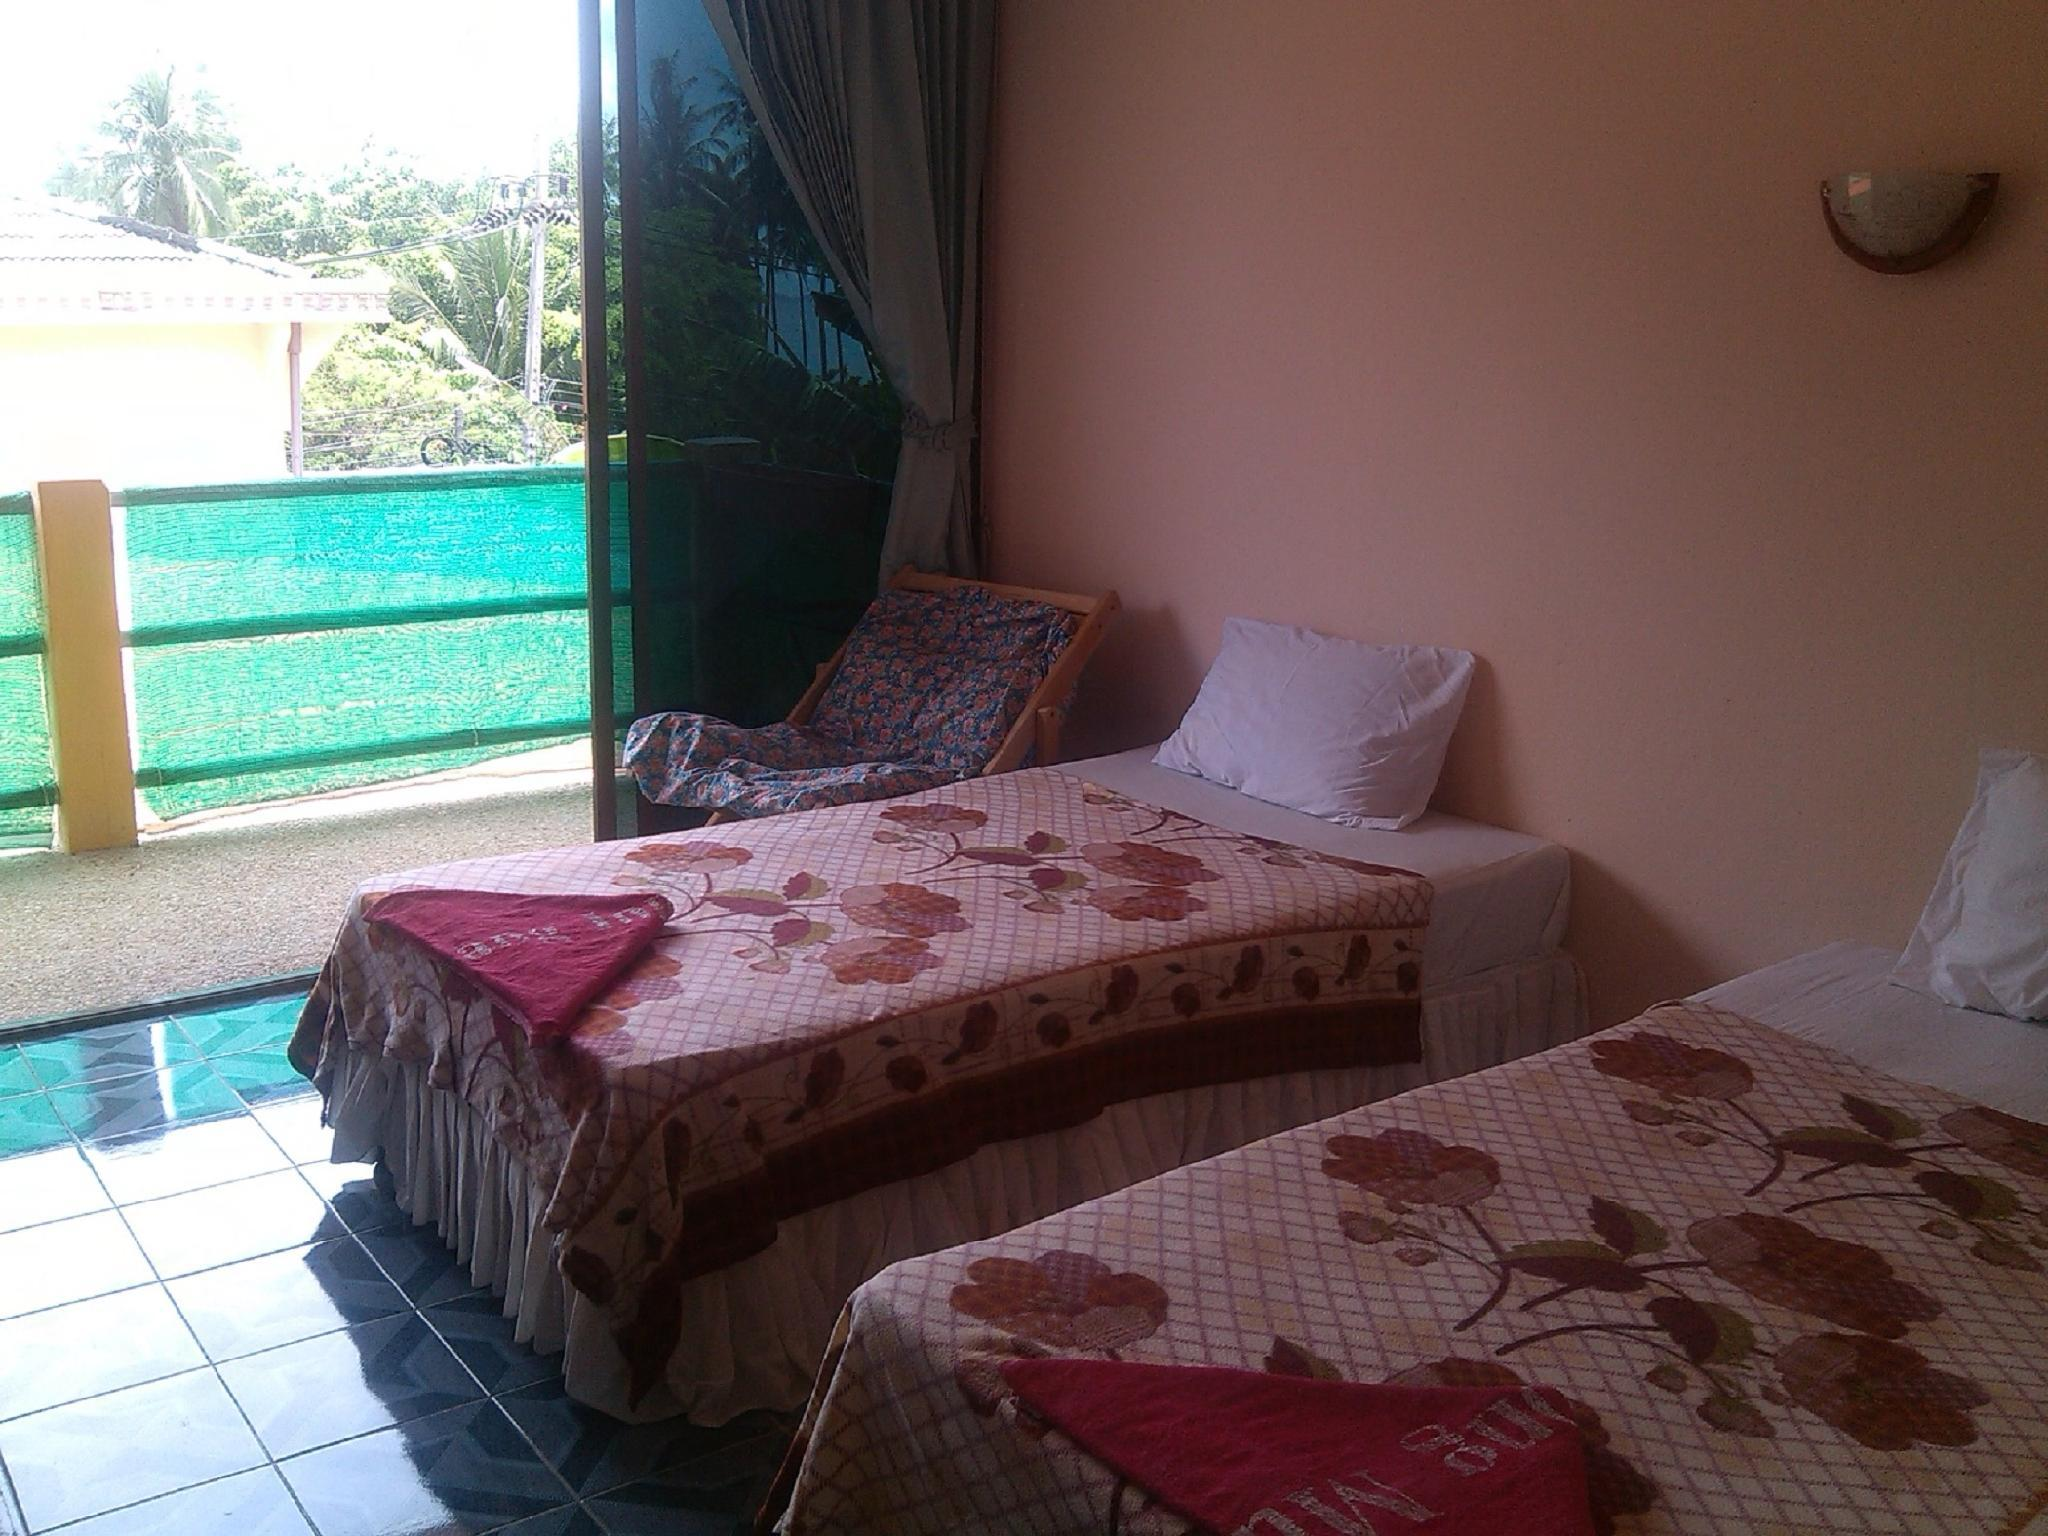 Visit Our Guestouse For A Relaxing Time